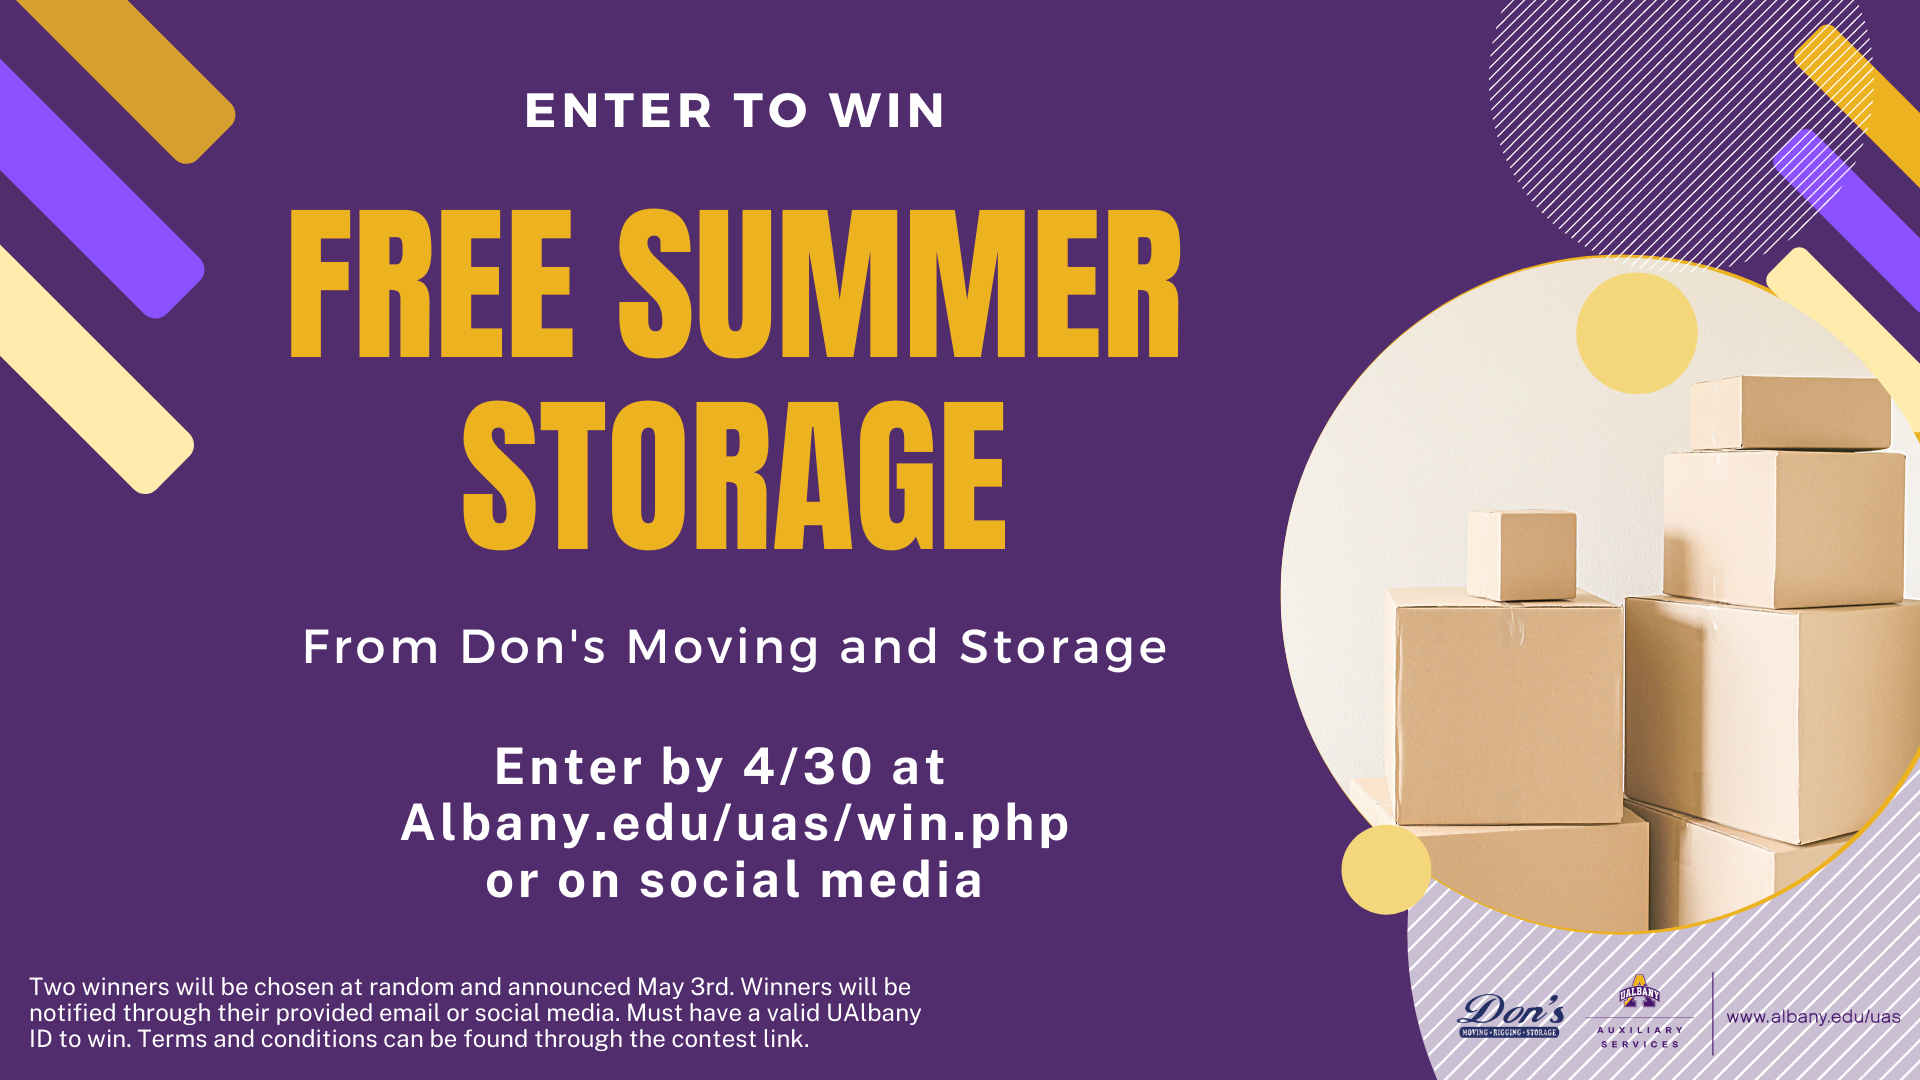 Enter to win free summer storage From Don's Moving and Storage. Enter by 4/30 at  Albany.edu/uas/win.php or on social media. Two winners will be chosen at random and announced April 27th. Winners will be notified through their provided email or social media. Must have a valid UAlbany ID to win. Terms and conditions can be found through the contest link. Dark purple background with white and gold text. Circle graphics along the sides with an images cardboard boxes inside on large circle.